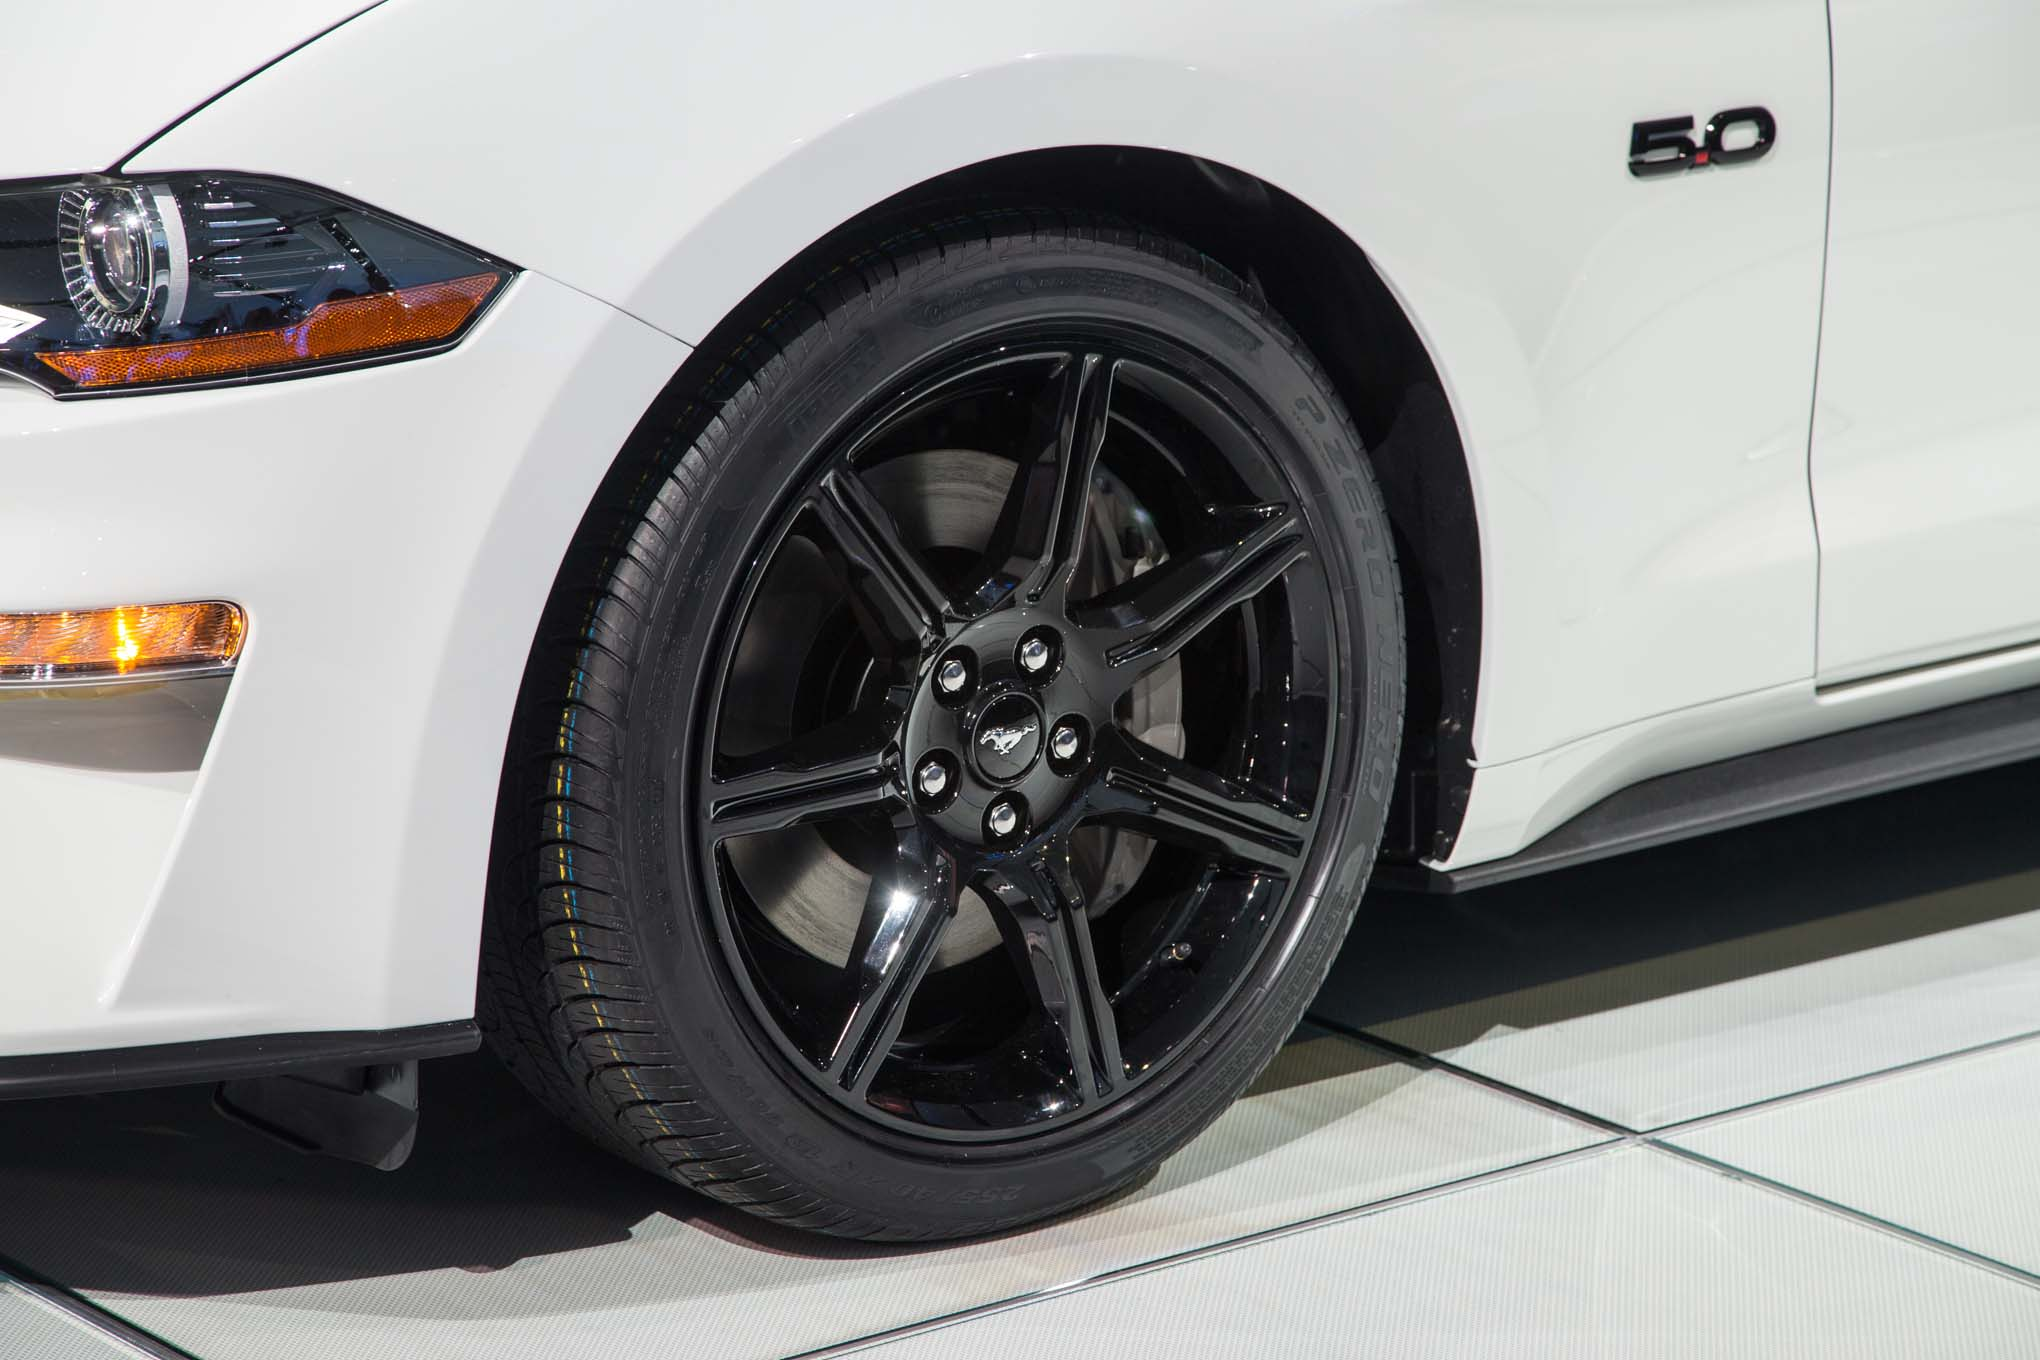 2018-Ford-Mustang-GT-front-wheel-02